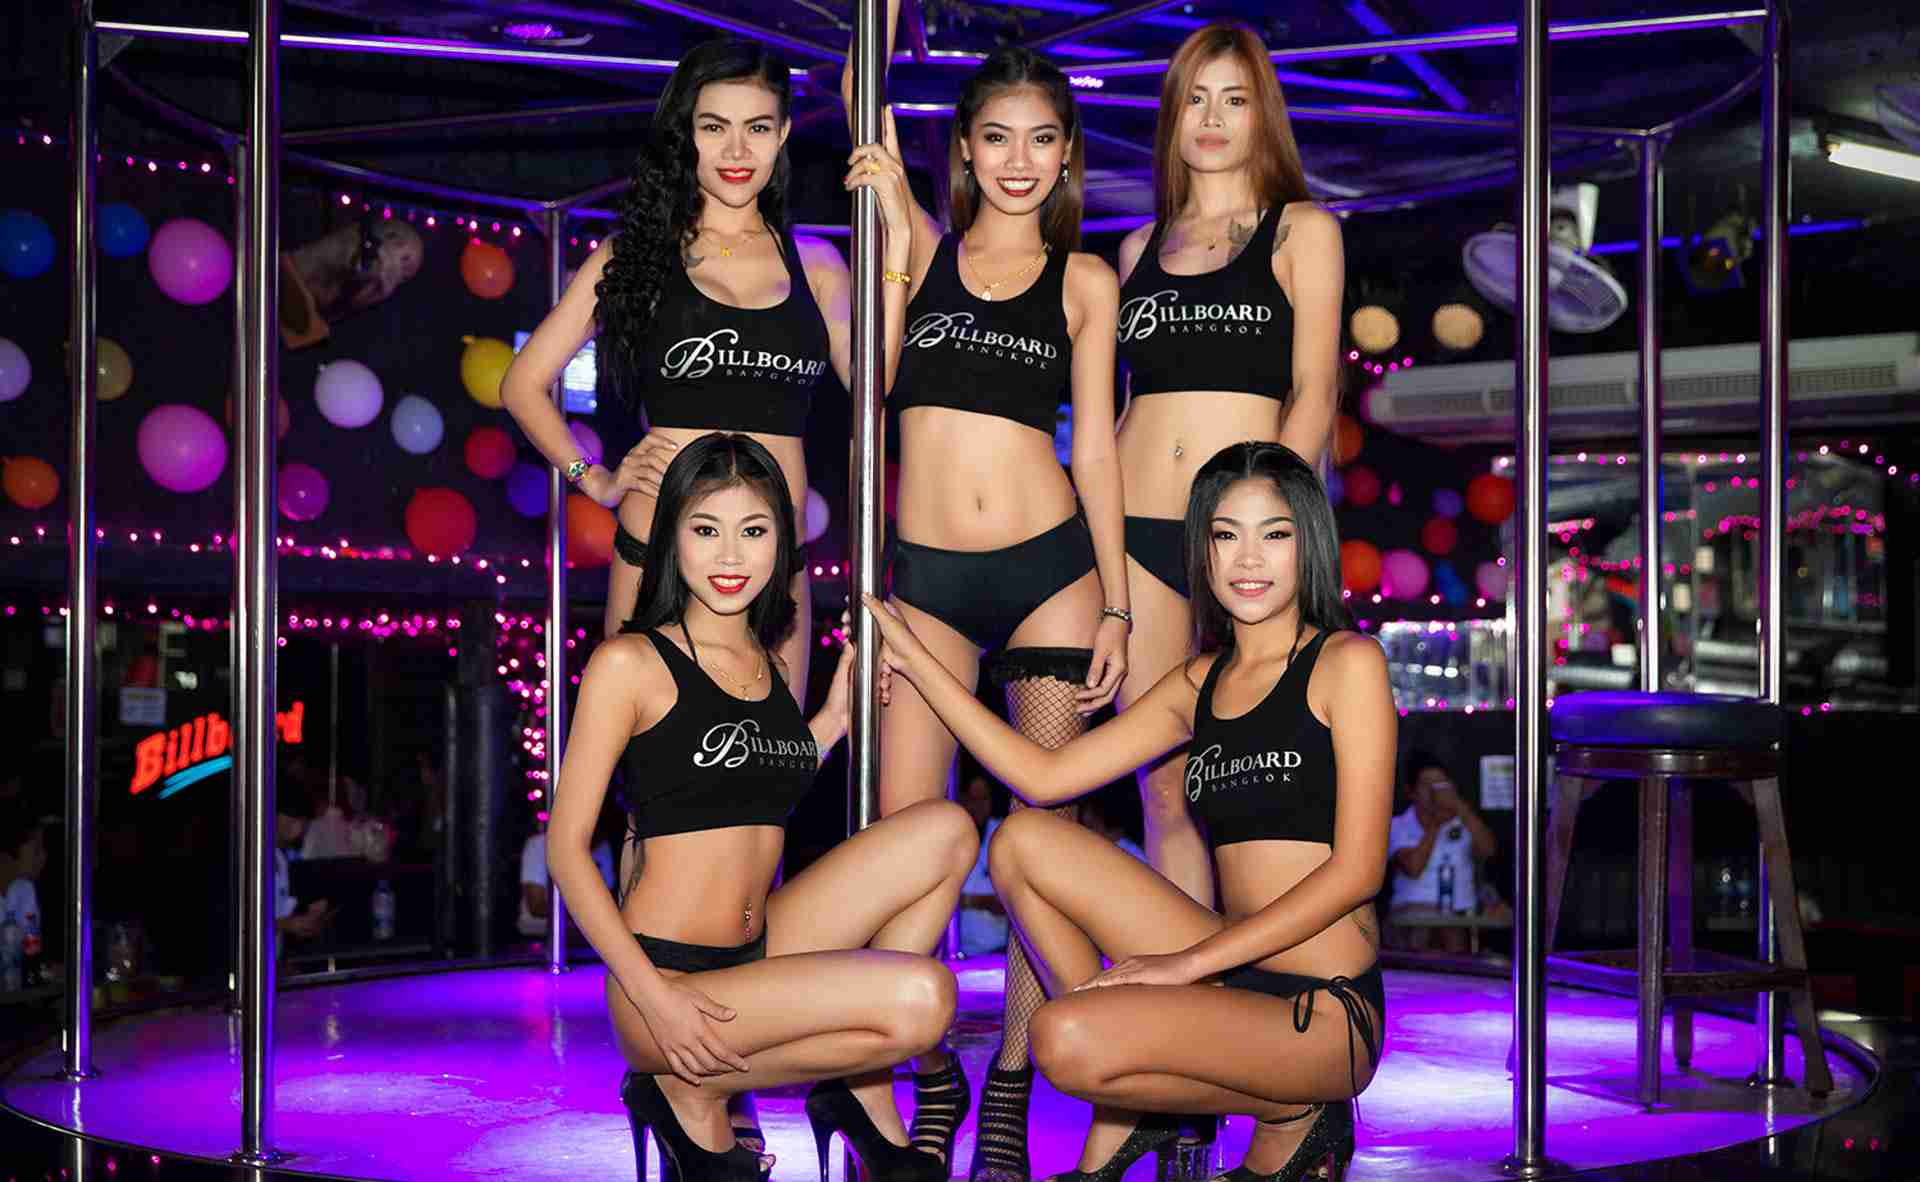 Billboard Bangkok Nana Plaza Thailand Girls Group Shot